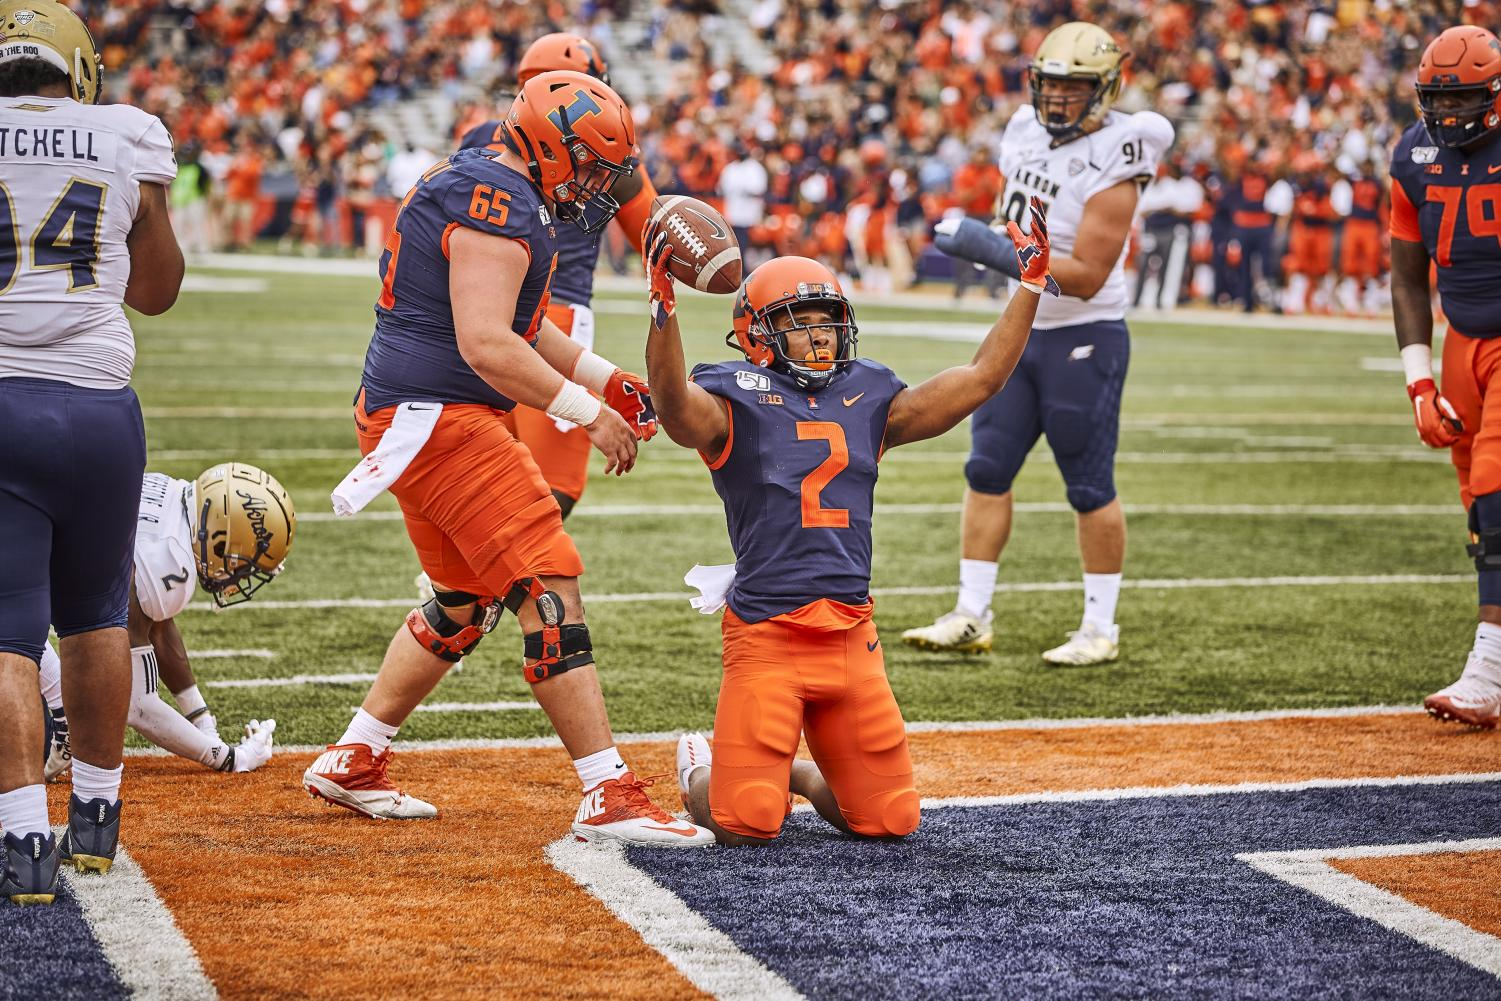 Senior Reggie Corbin celebrates in the end zone after scoringe a touchdown during the Illini's game against the Akron Zips. Corbin feels pressure in his publicized position, and writing provides an escape.